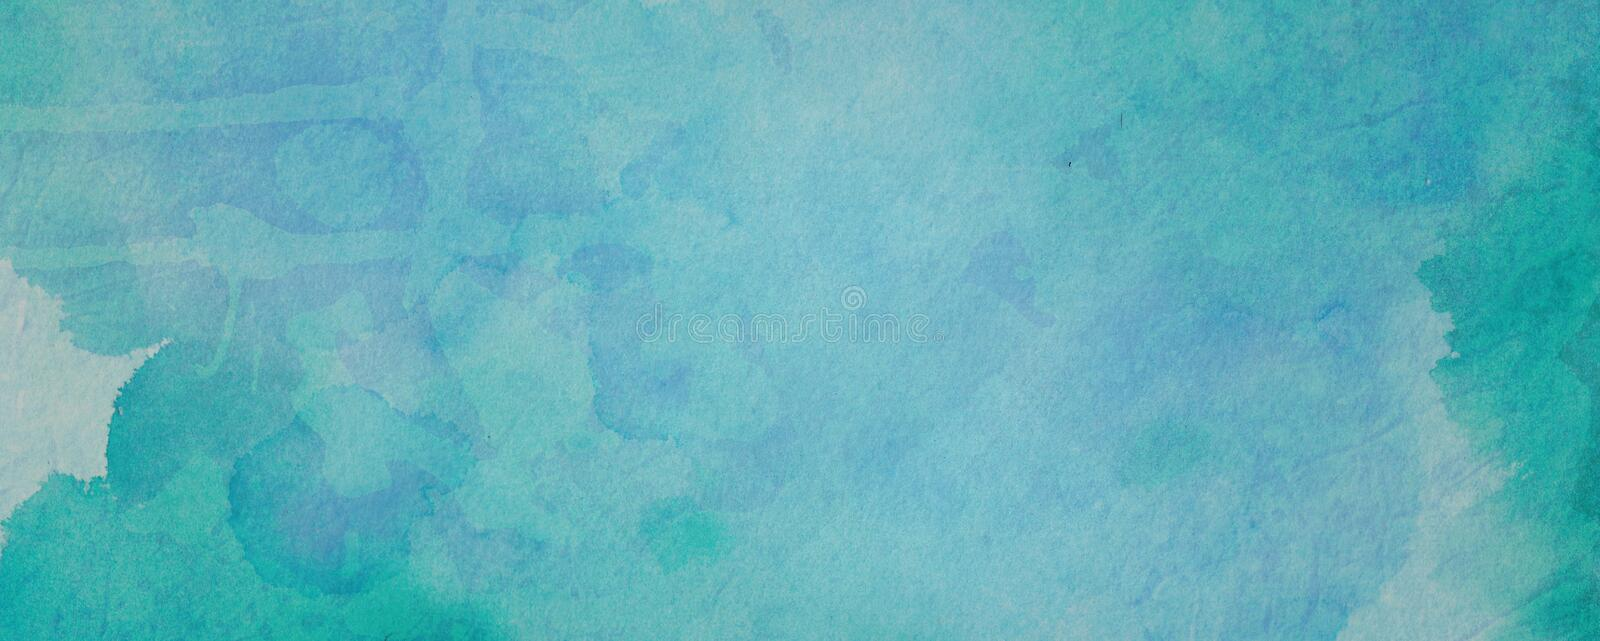 Blue green watercolor paint splash or blotch background with fringe bleed wash and bloom design, blobs of paint on watercolor pape stock photos